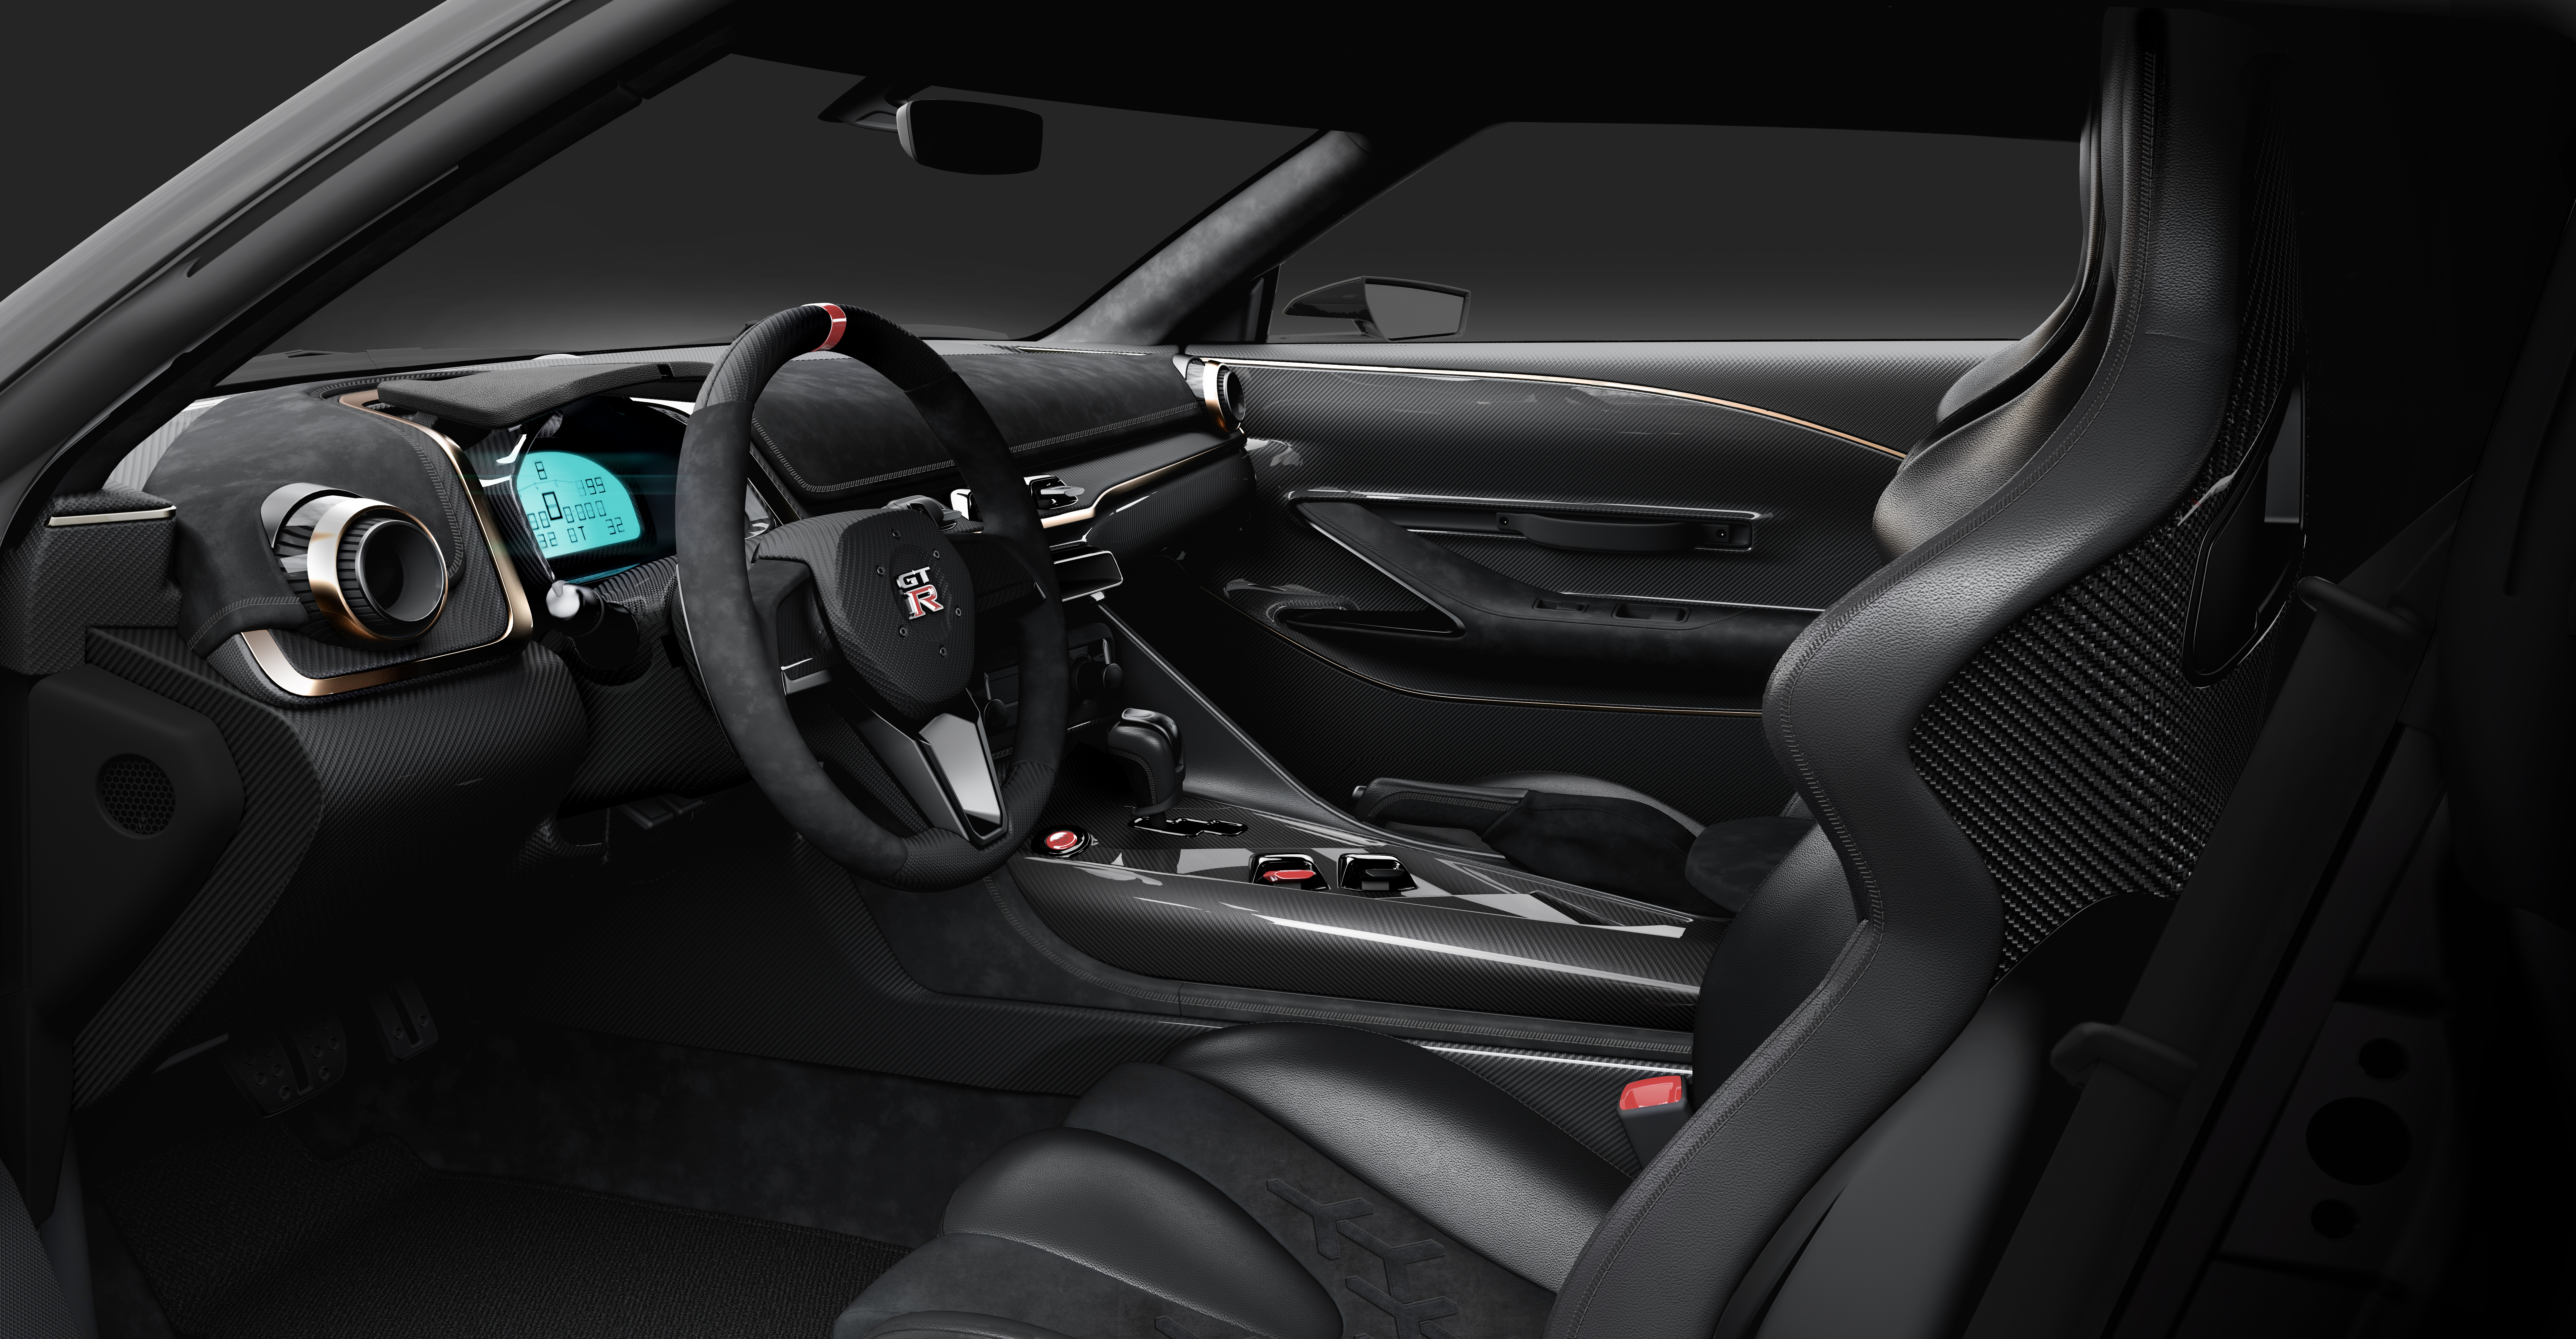 Two different carbon fiber finishes were used across the center console, instrument panel and door linings, along with a combination of Alcantara and leather. | Nissan photo